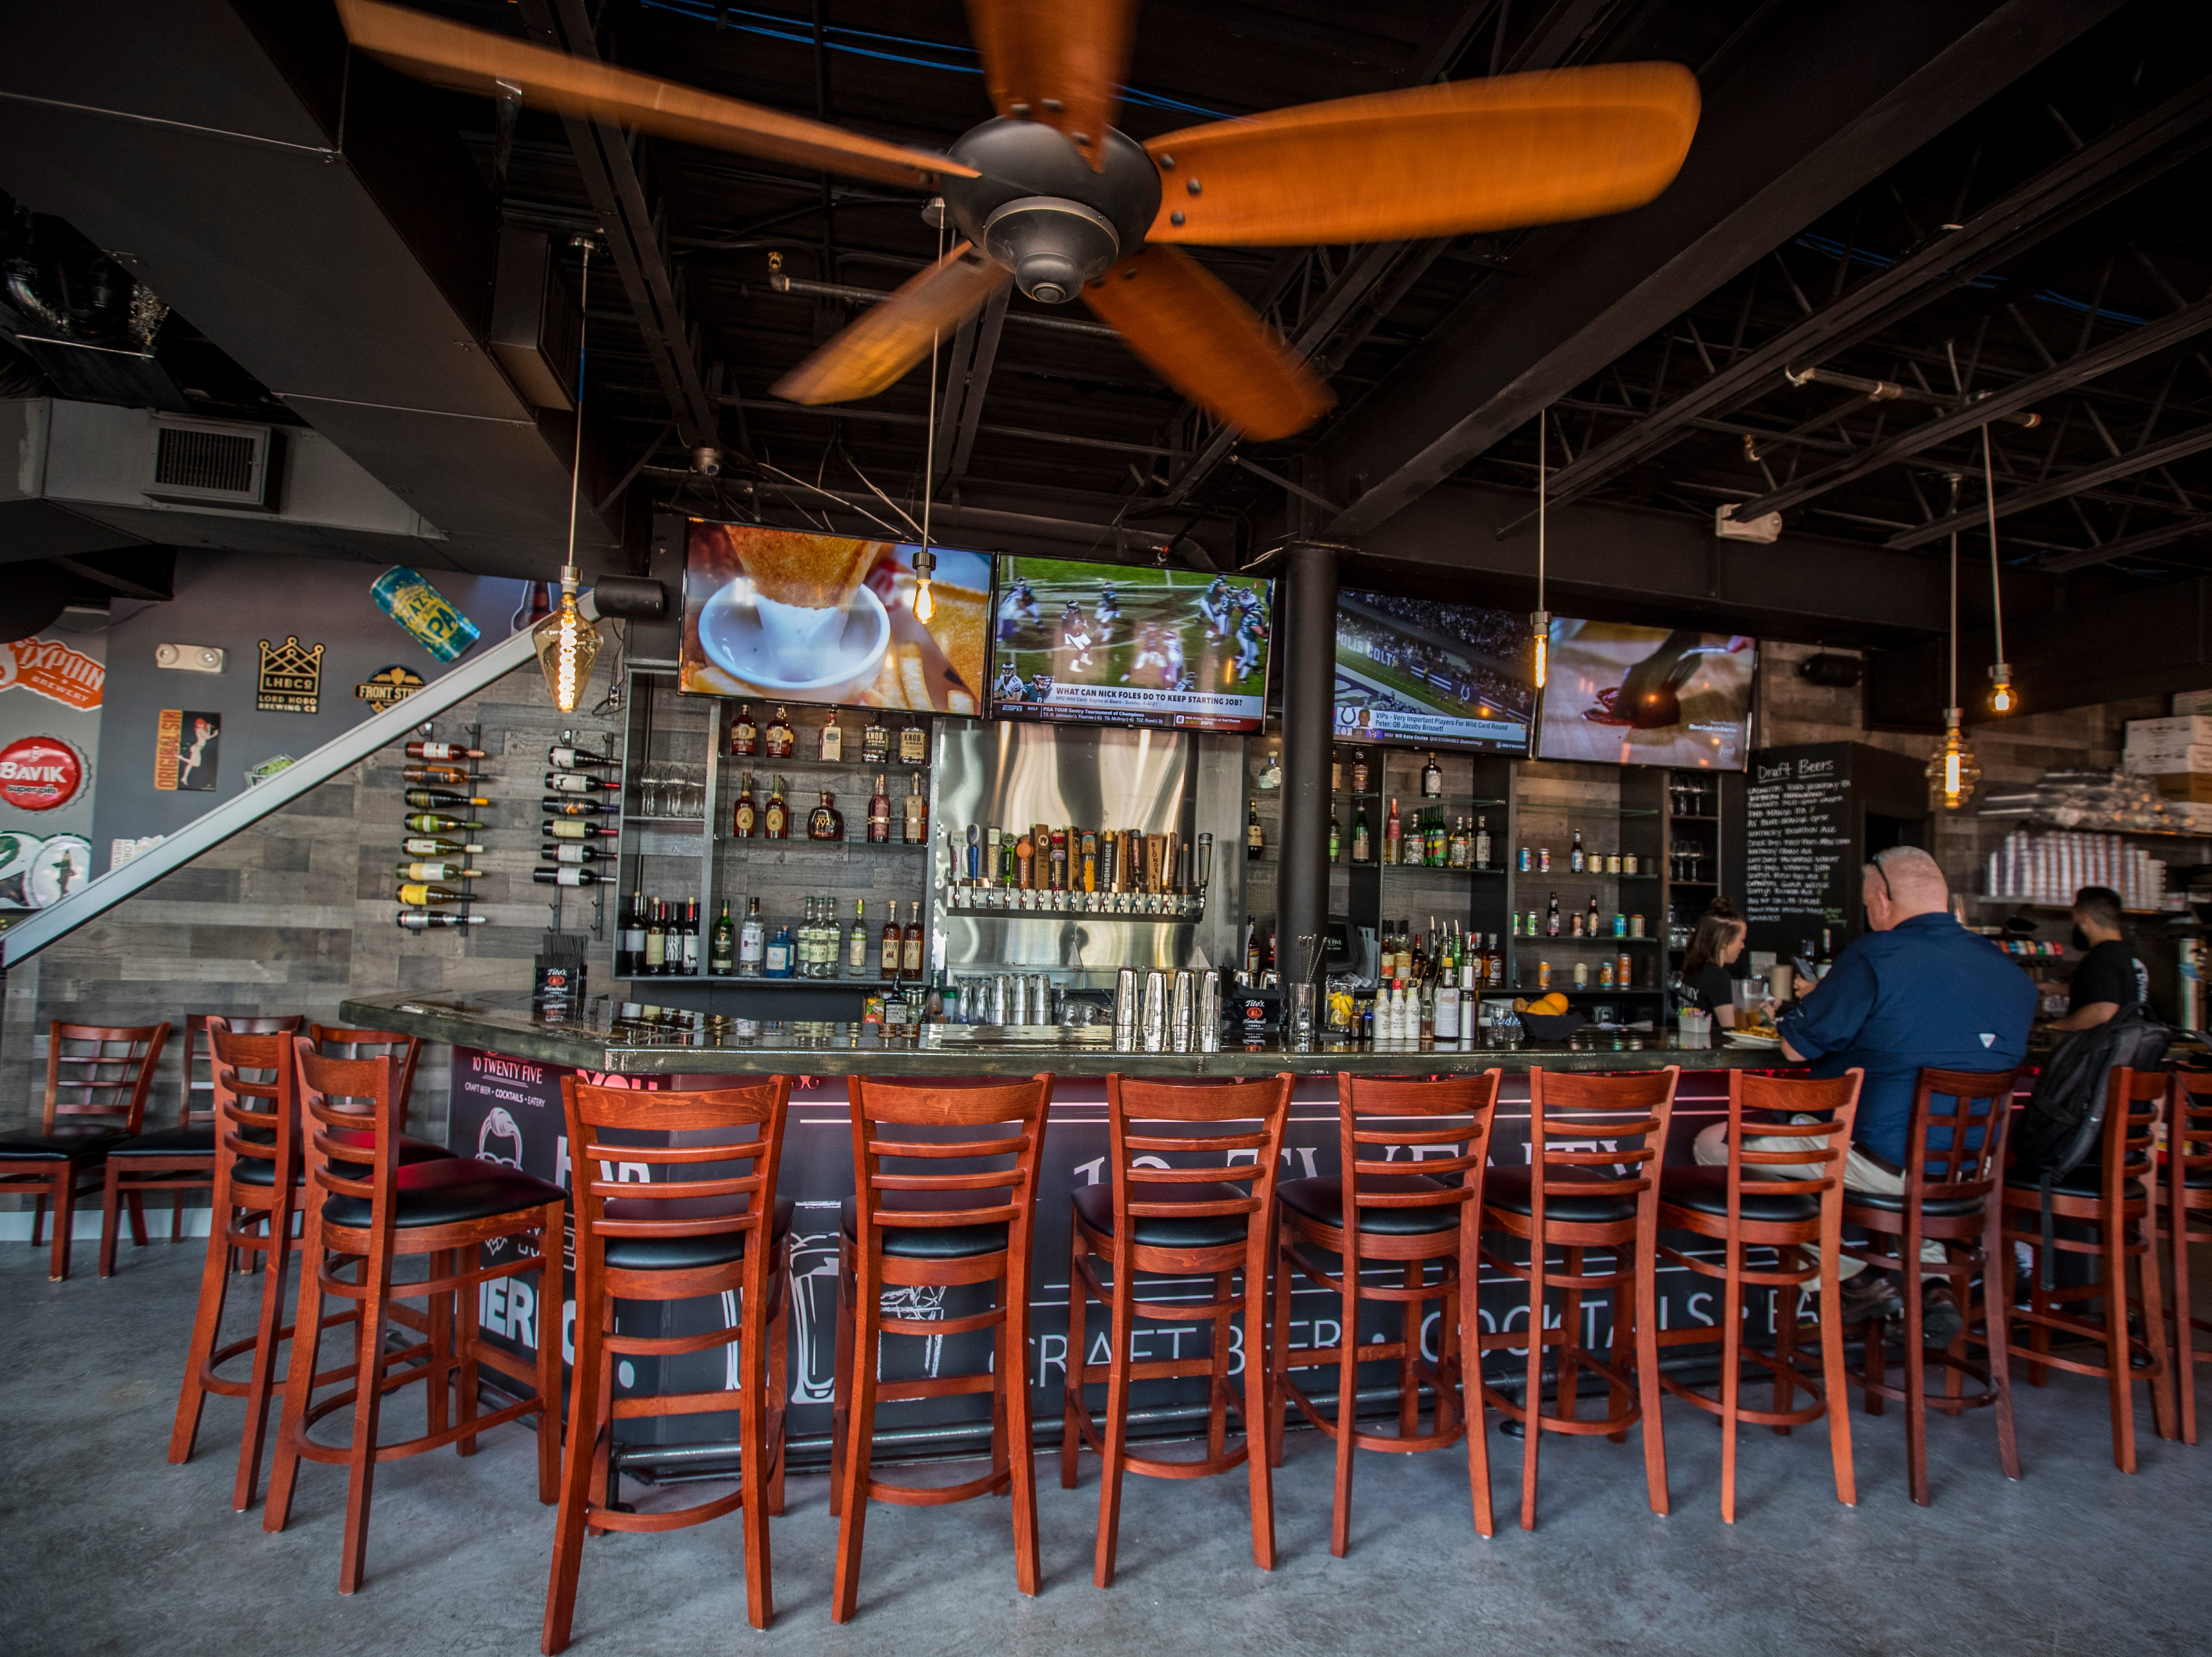 Downstairs bar and restaurant area. Owners Chad and Amber Zollinger just opened their second spot for their popular restaurant, 10 Twenty Five. The restaurant is opening in downtown Fort Myers, making it the second location for the local restaurant, which opened its first store in Cape Coral in fall 2016.